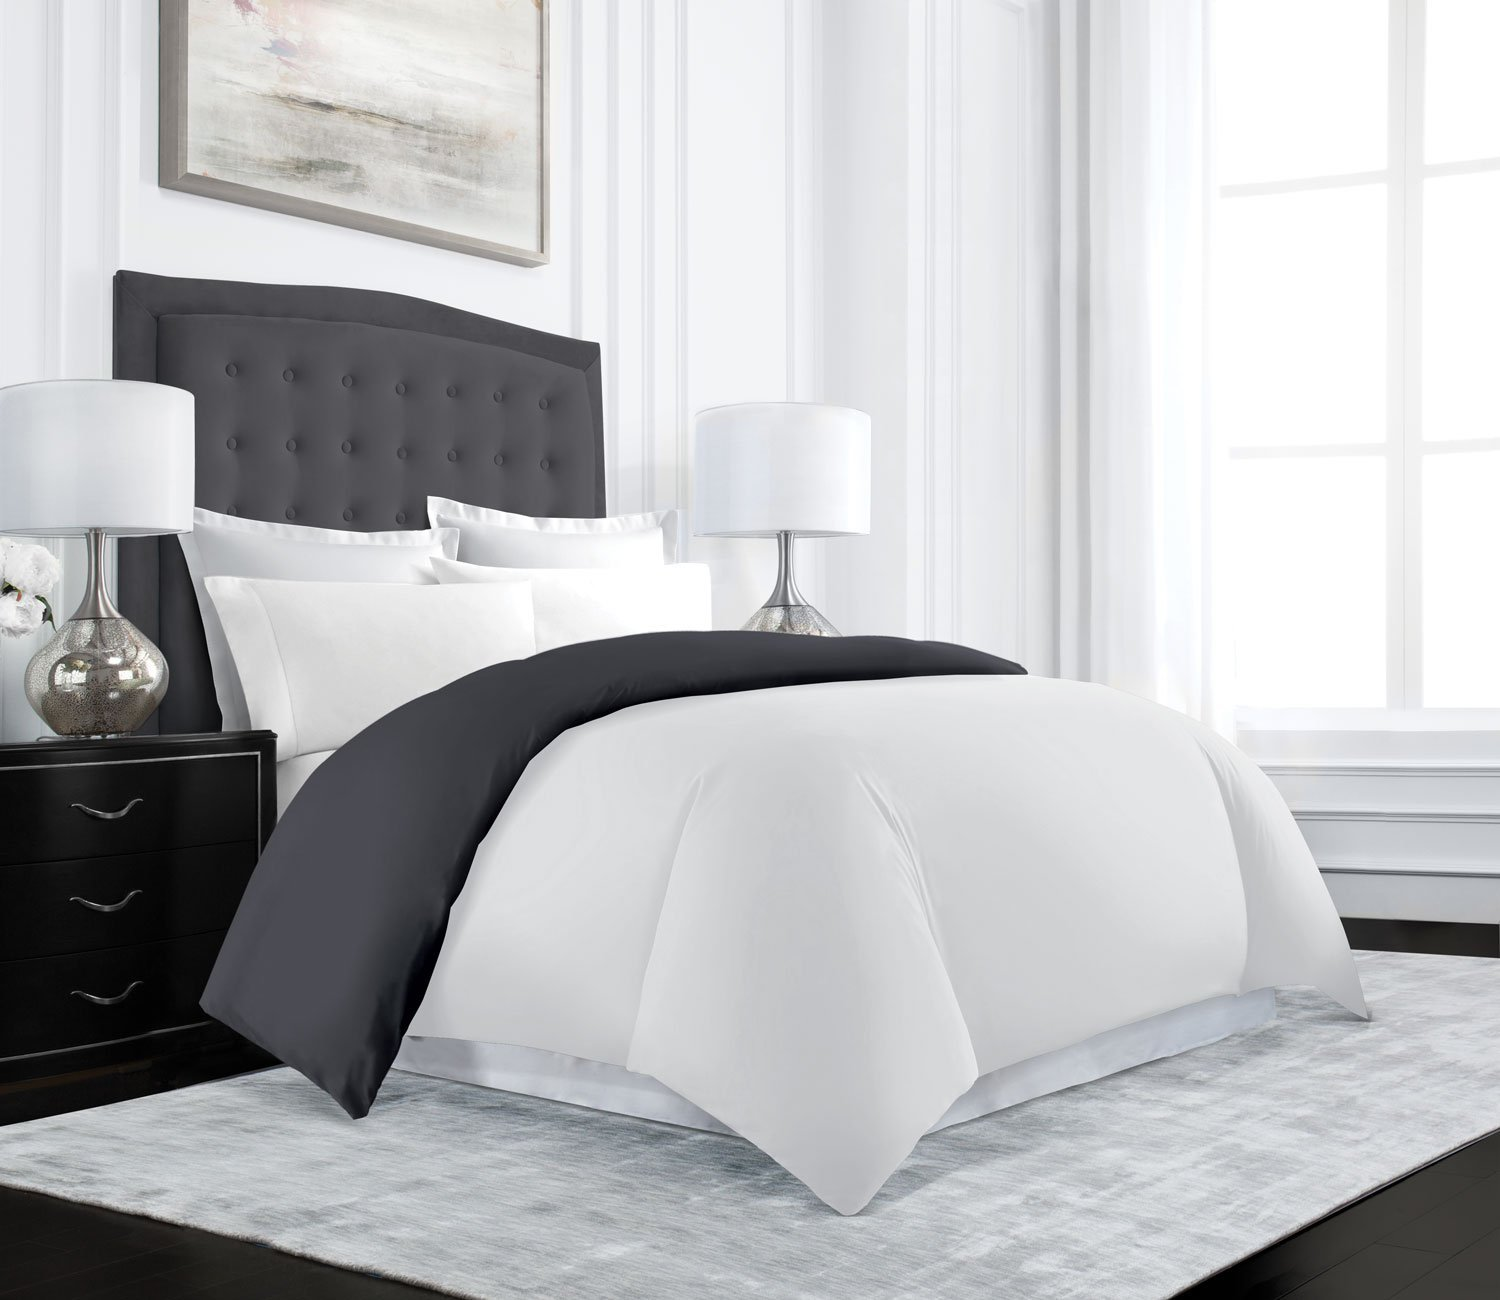 Beckham Hotel Collection Luxury Reversible Duvet Cover Set - Luxurious Soft-Brushed Microfiber, Hypoallergenic and Stain Resistant -Twin/Twin XL - Gray/White